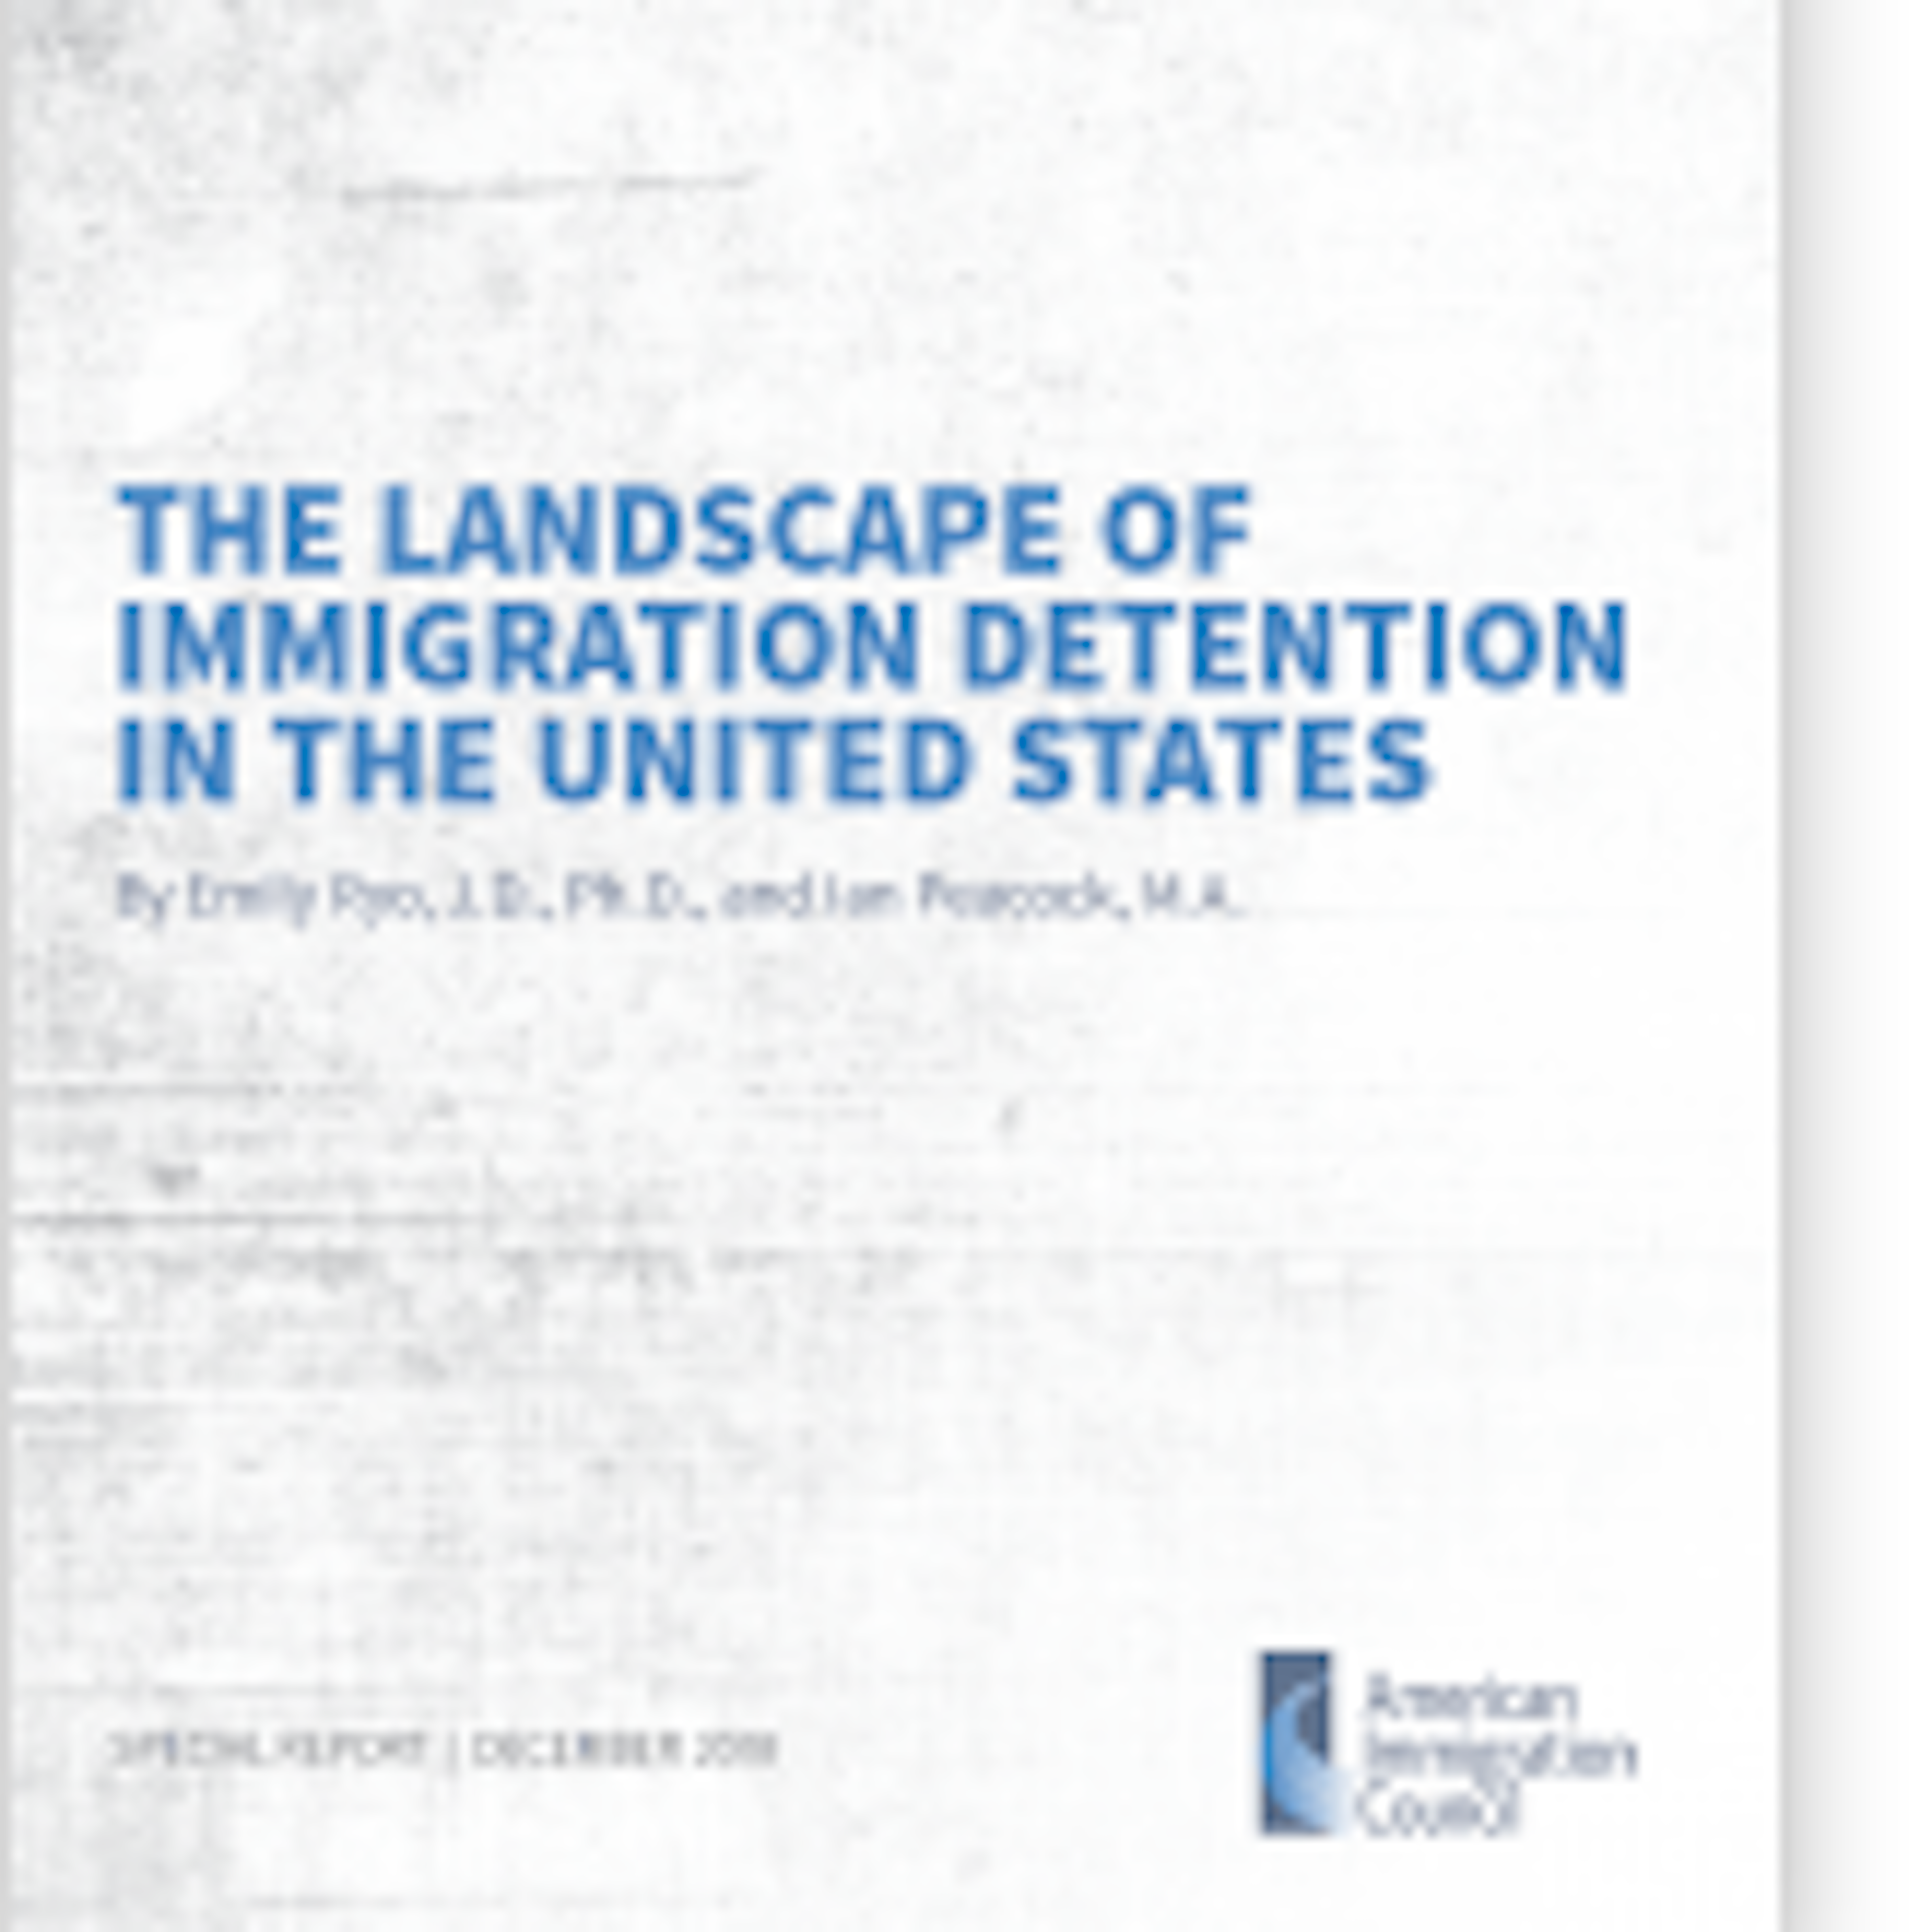 Image for The Landscape of Immigration Detention in the United States by Emily Ryo and Ian Peacock